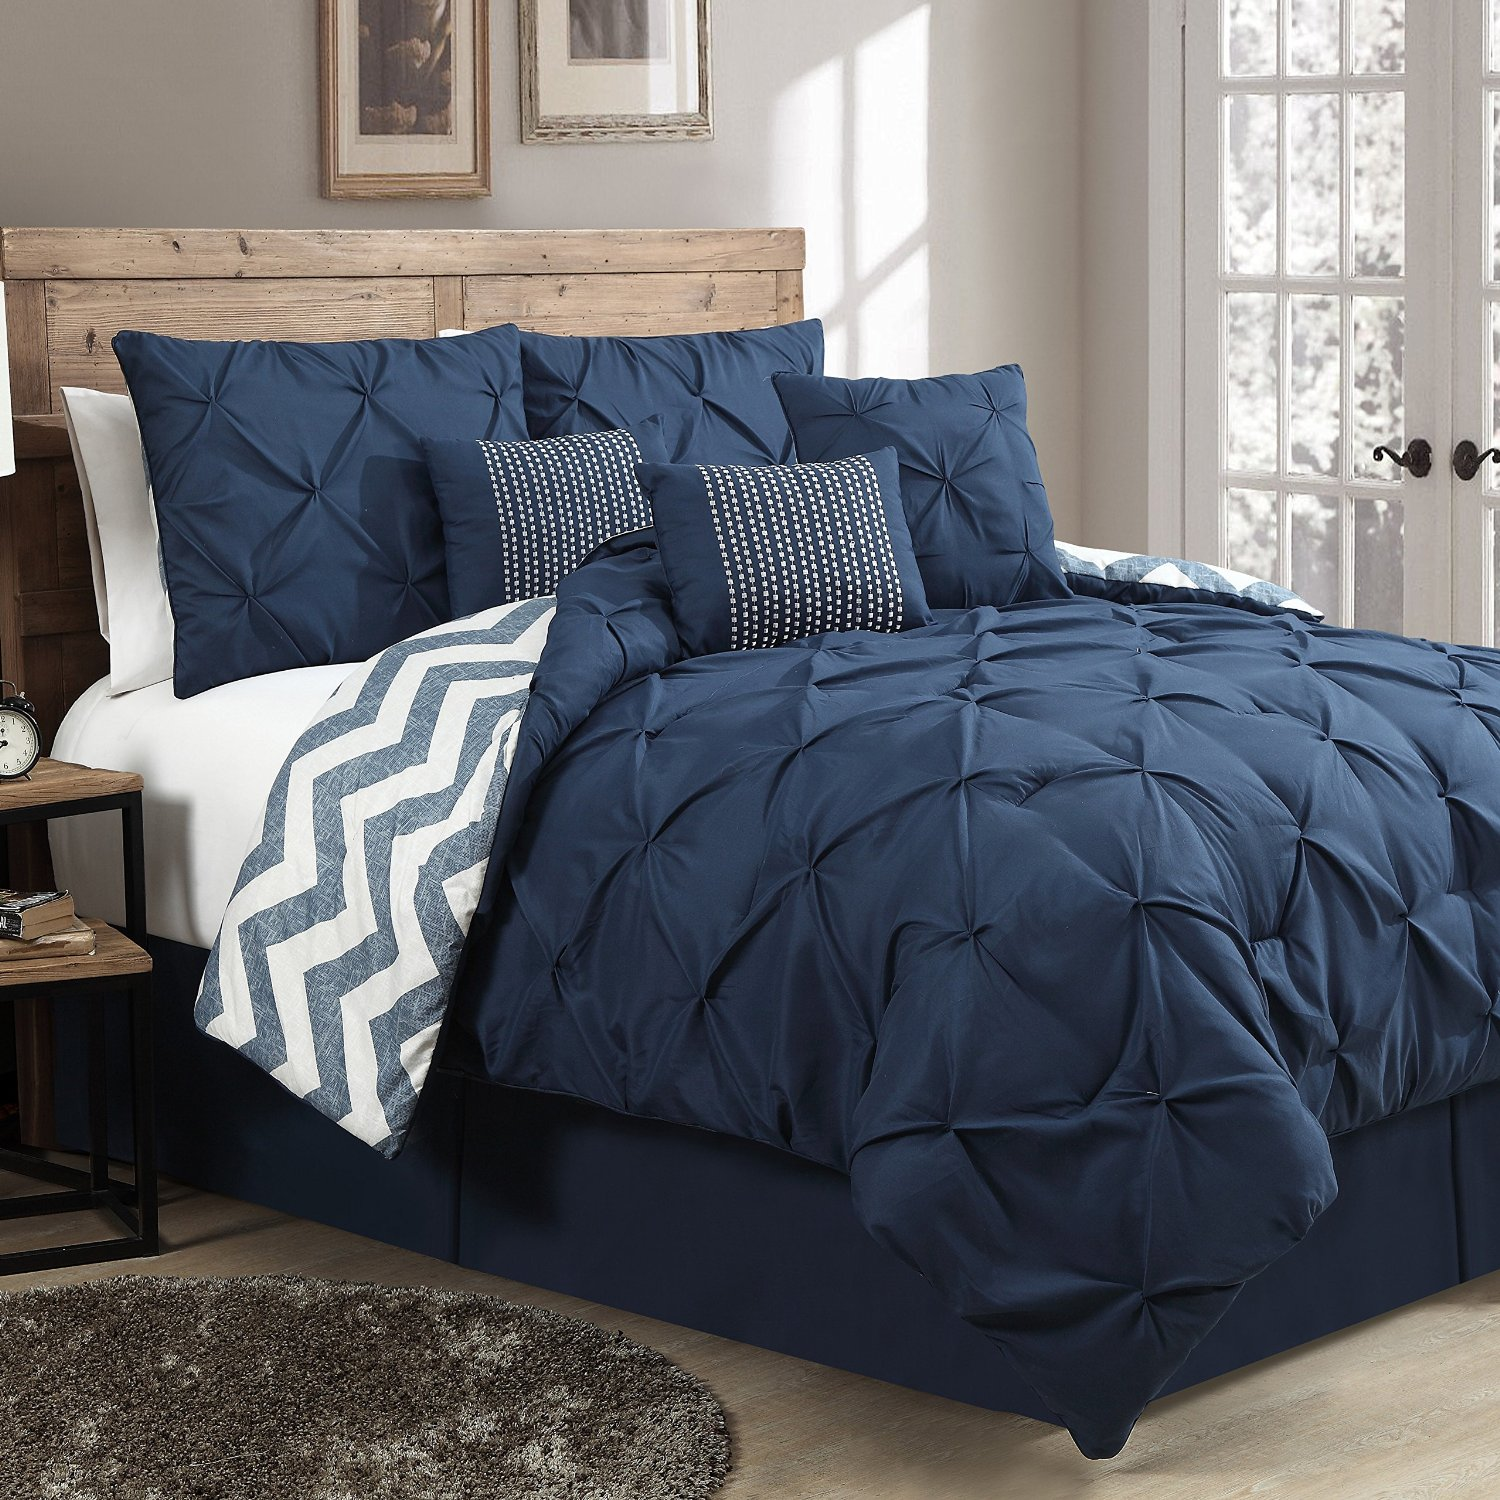 A great, high-quality designer comforter can go a long way. Sleeping on a bed with a soft, luxurious comforter could be the difference between a good night's sleep and a night spent tossing and turning.